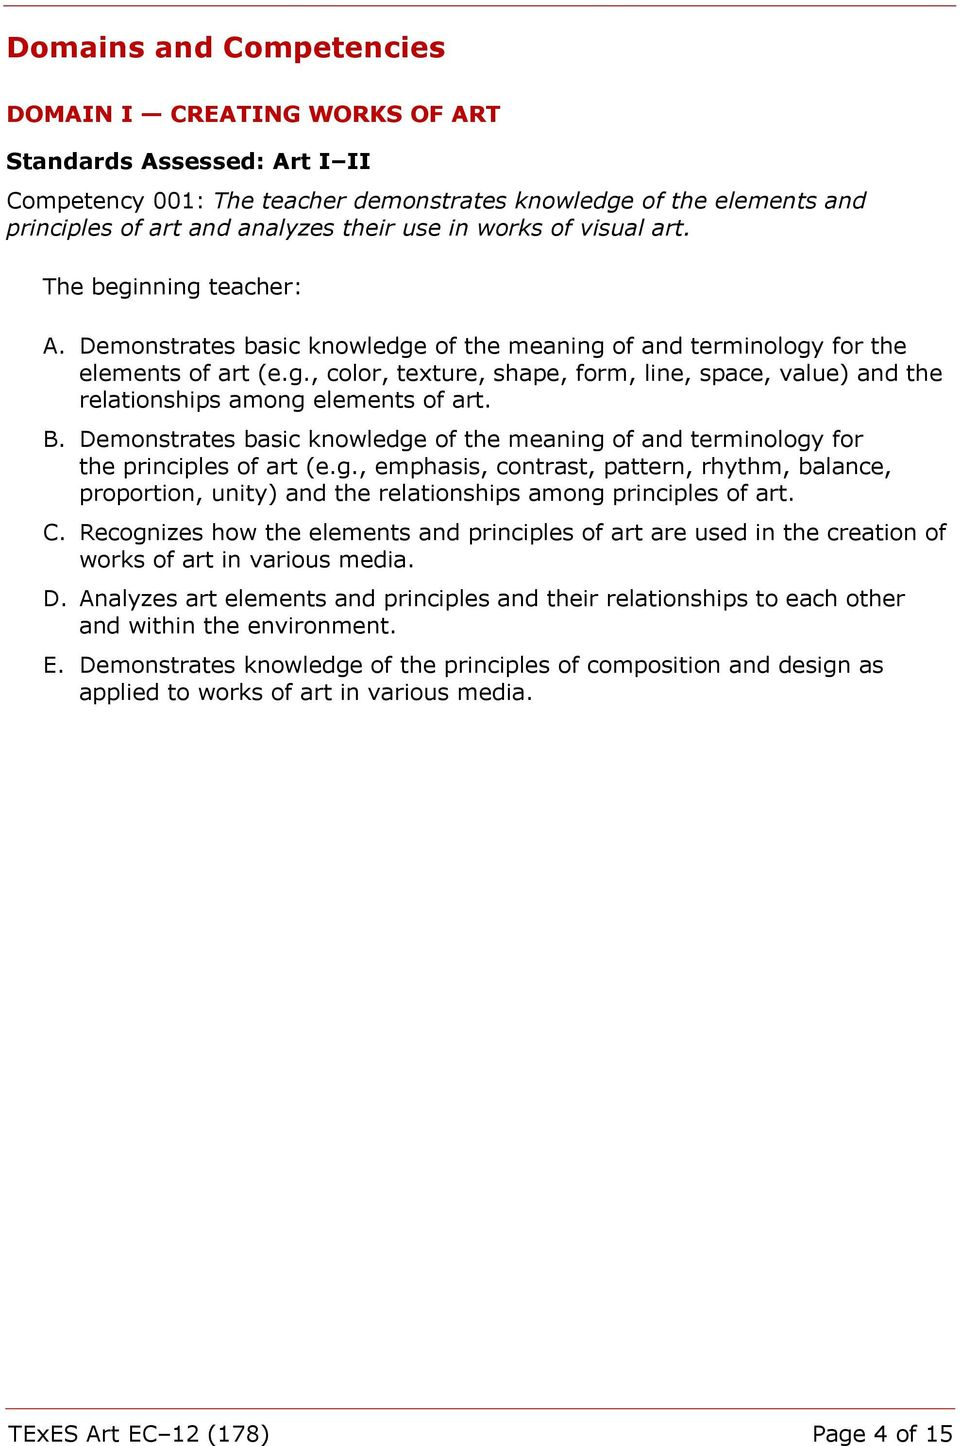 B. Demonstrates basic knowledge of the meaning of and terminology for the principles of art (e.g., emphasis, contrast, pattern, rhythm, balance, proportion, unity) and the relationships among principles of art.